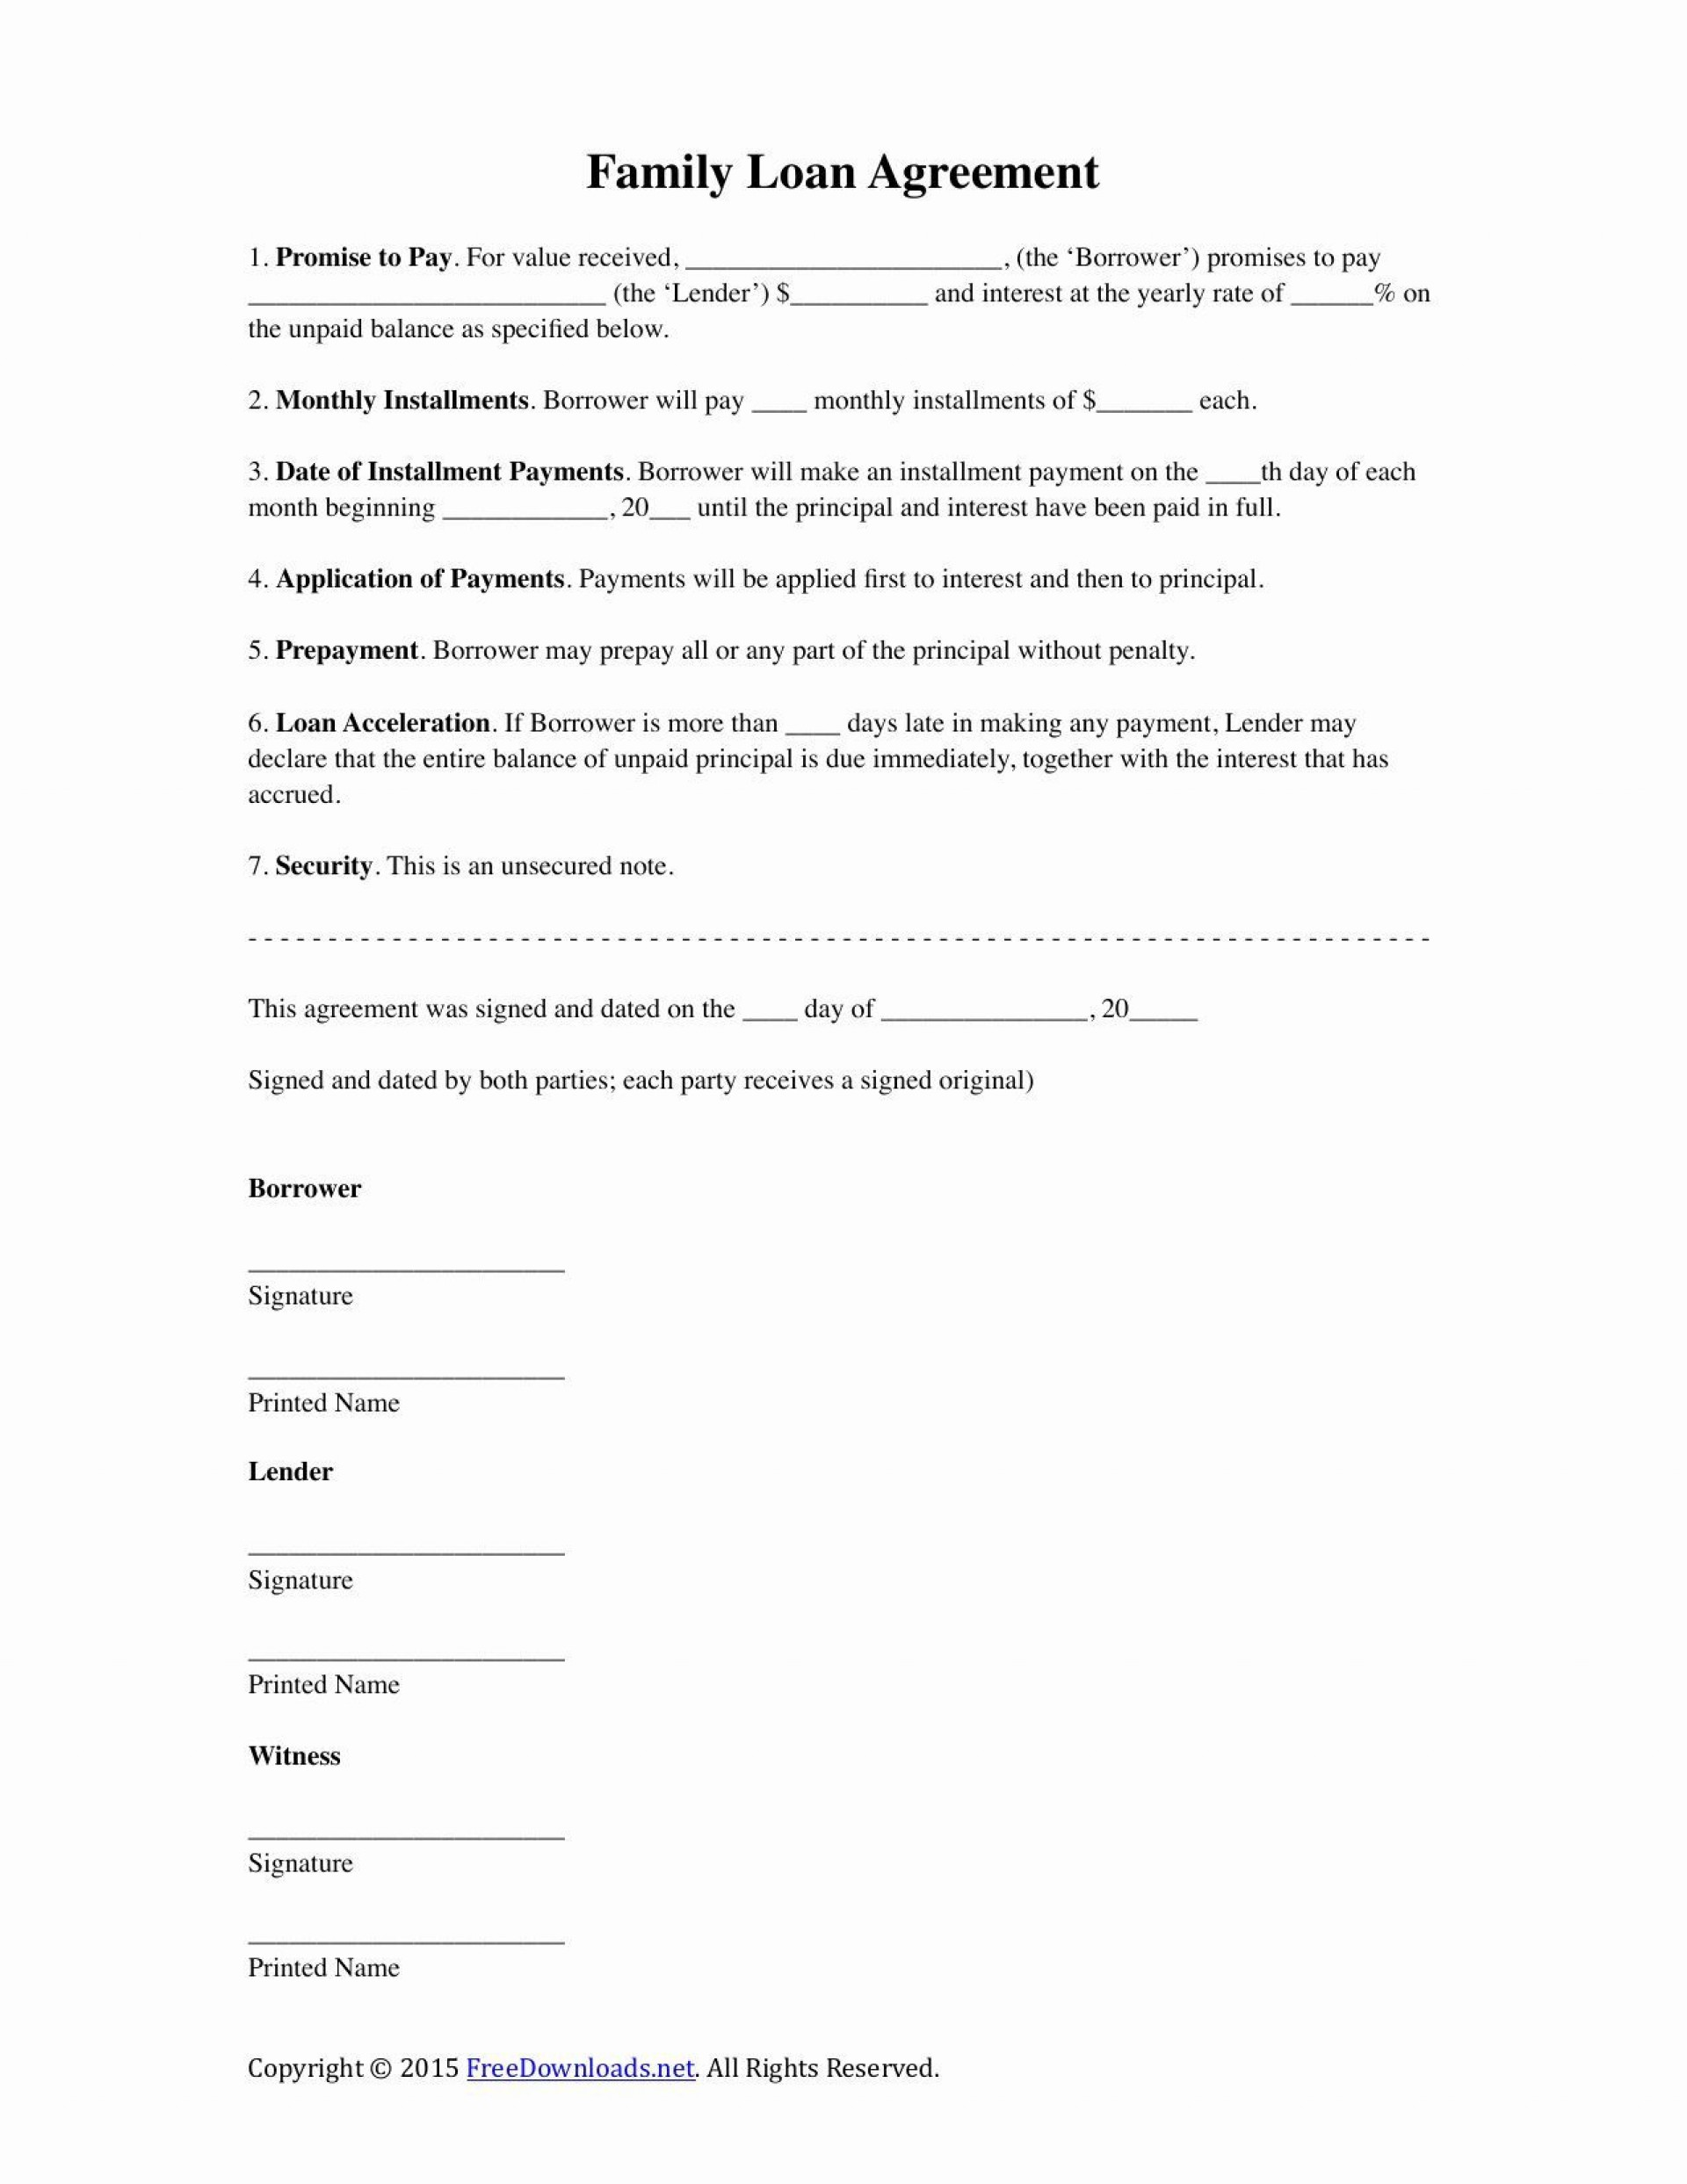 000 Awful Family Loan Agreement Template Pdf Sample  Free1920